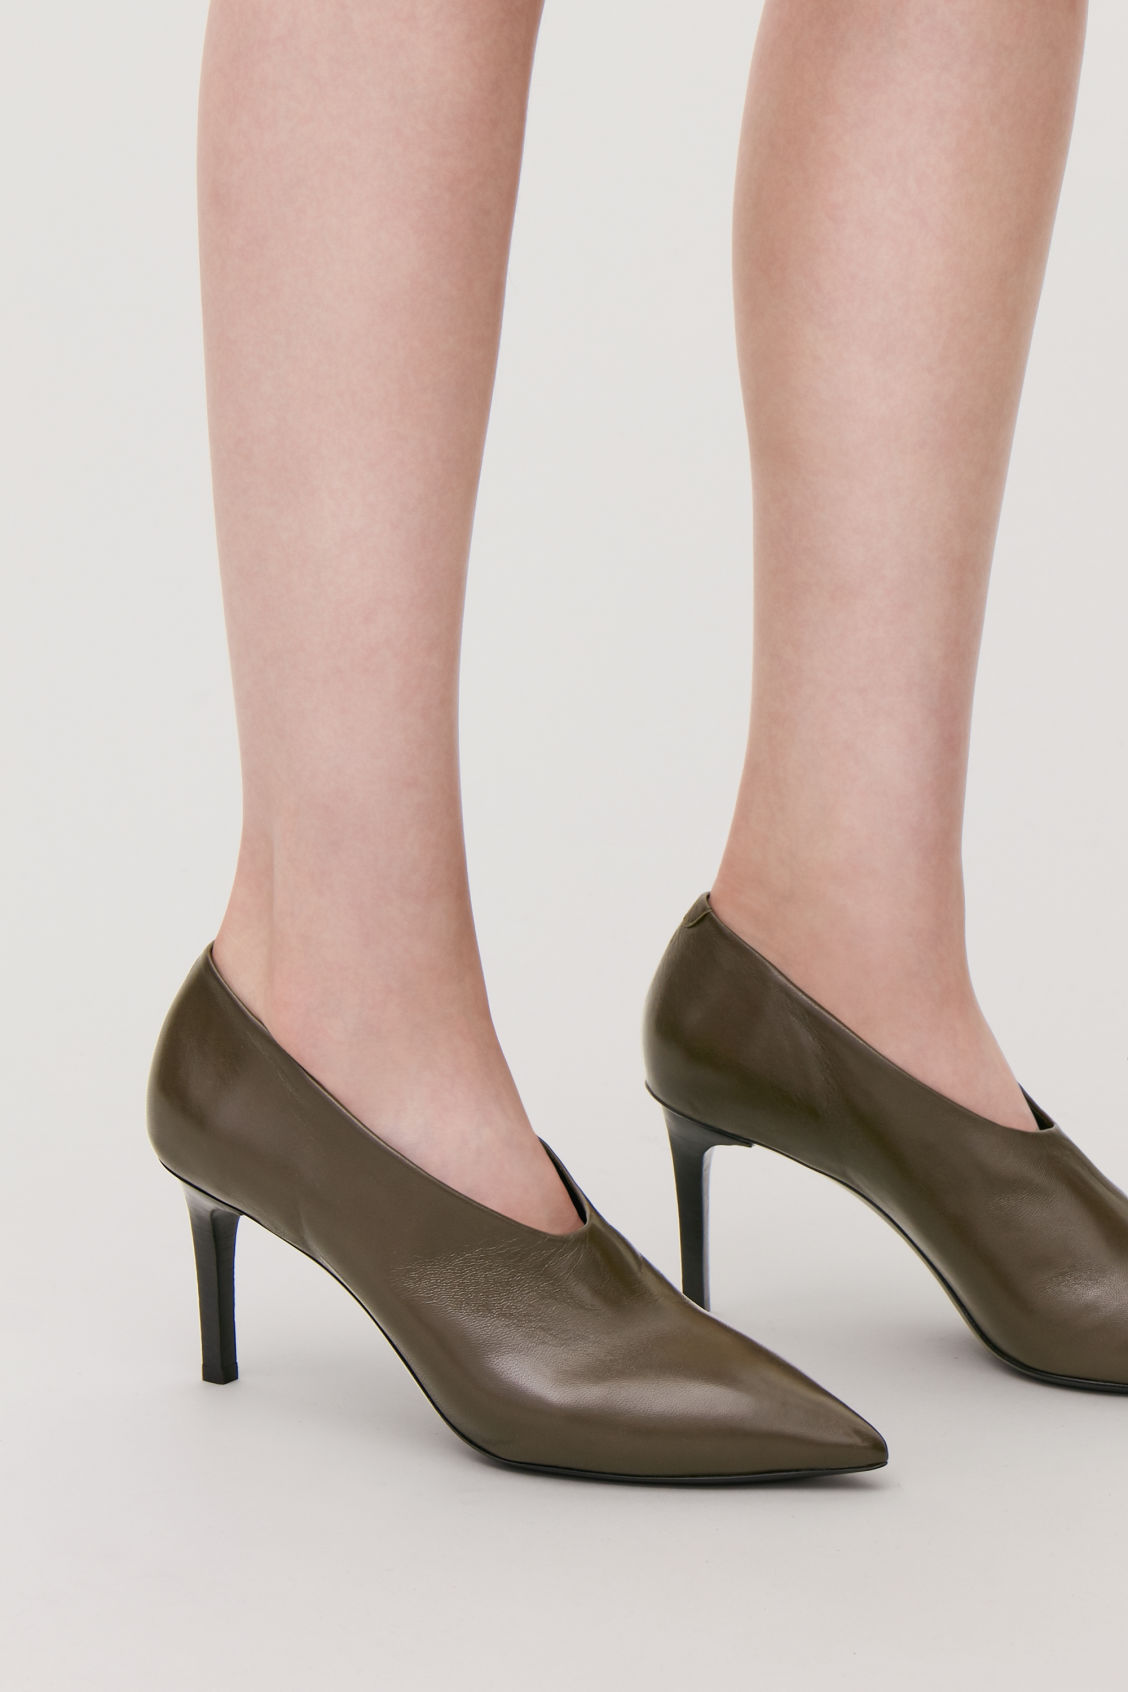 Detailed image of Cos pointed leather heels in green